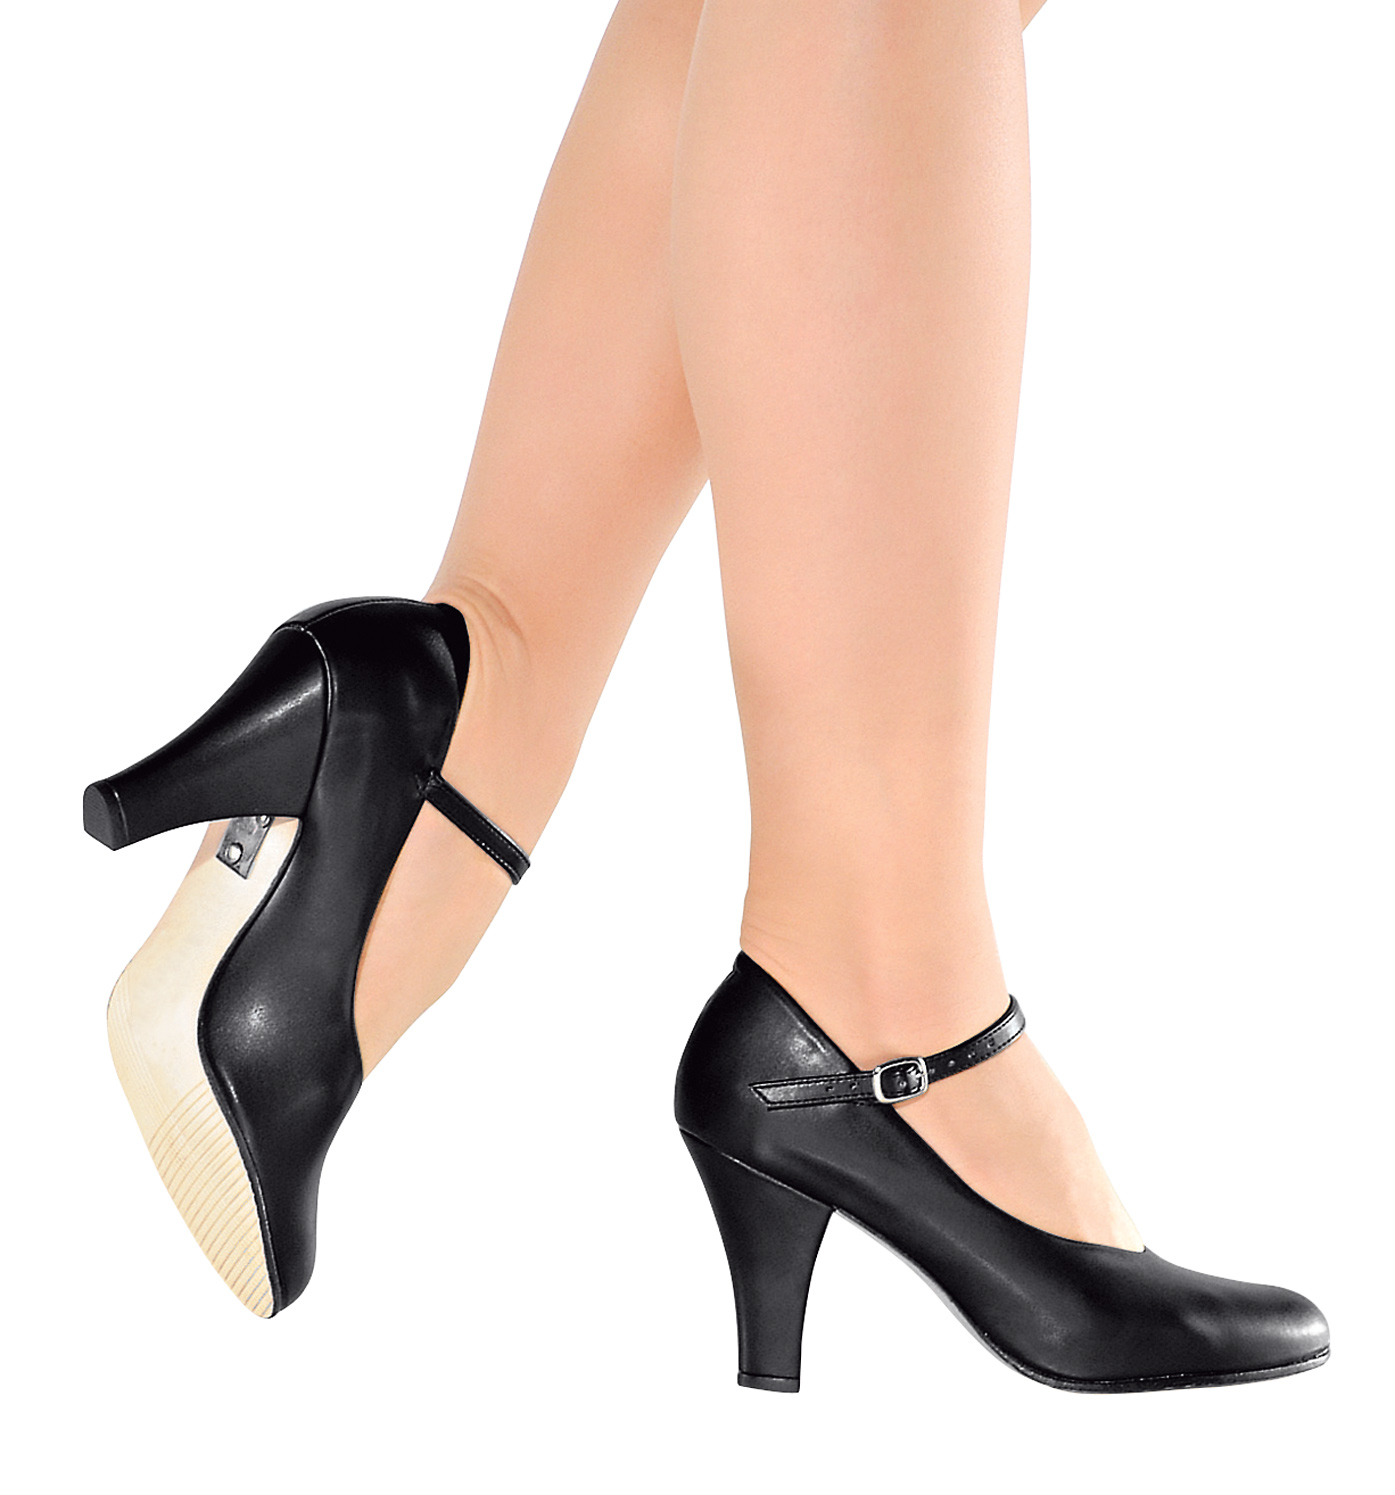 3 quot character shoes character shoes discountdance